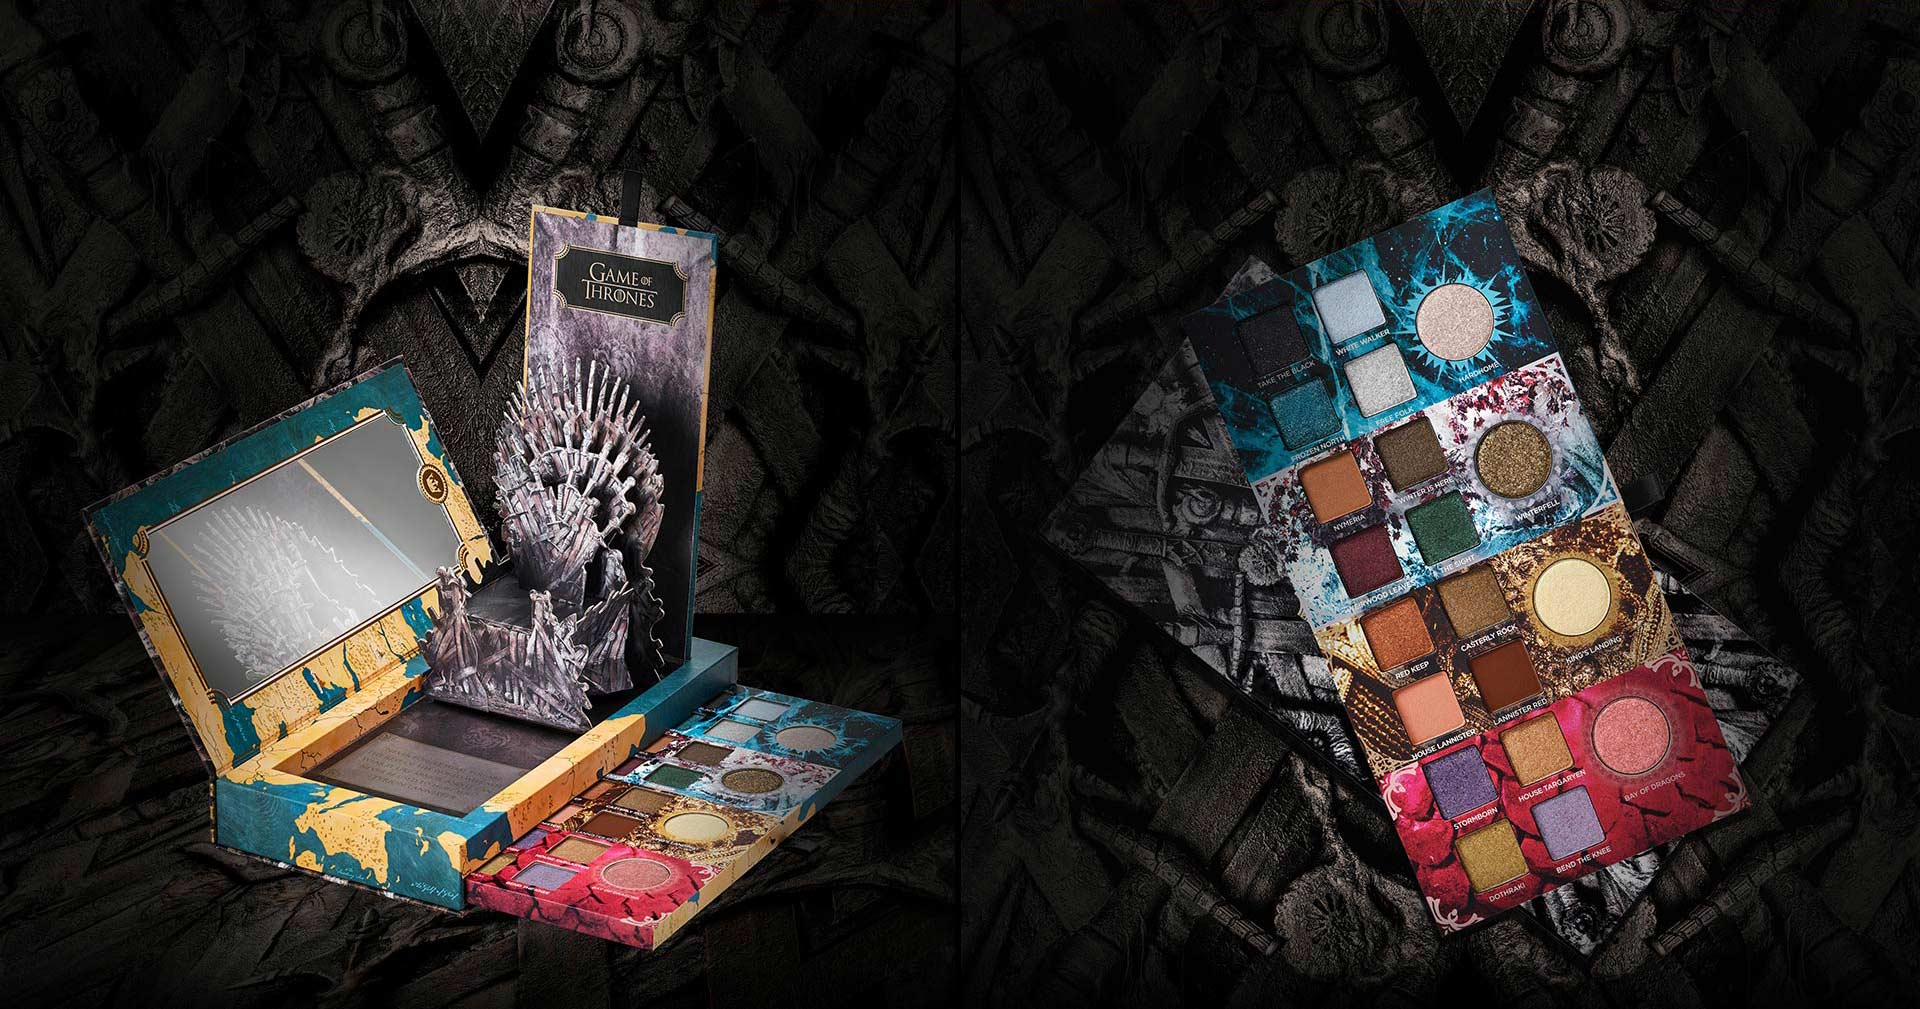 Game of Thrones eyeshadow palette, courtesy of Urban Decay